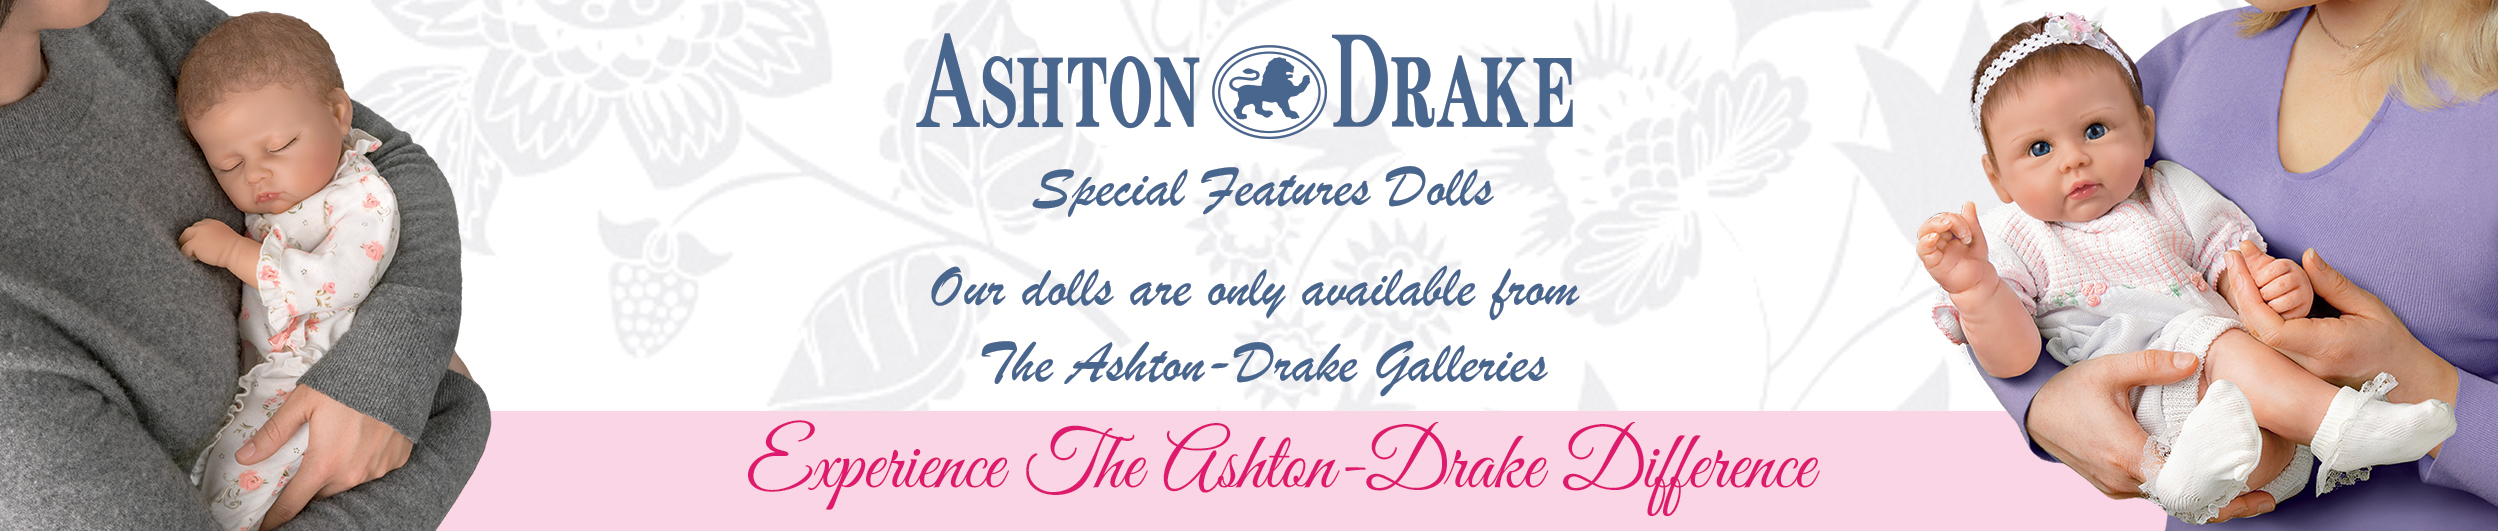 Ashton-Drake Special Features Dolls